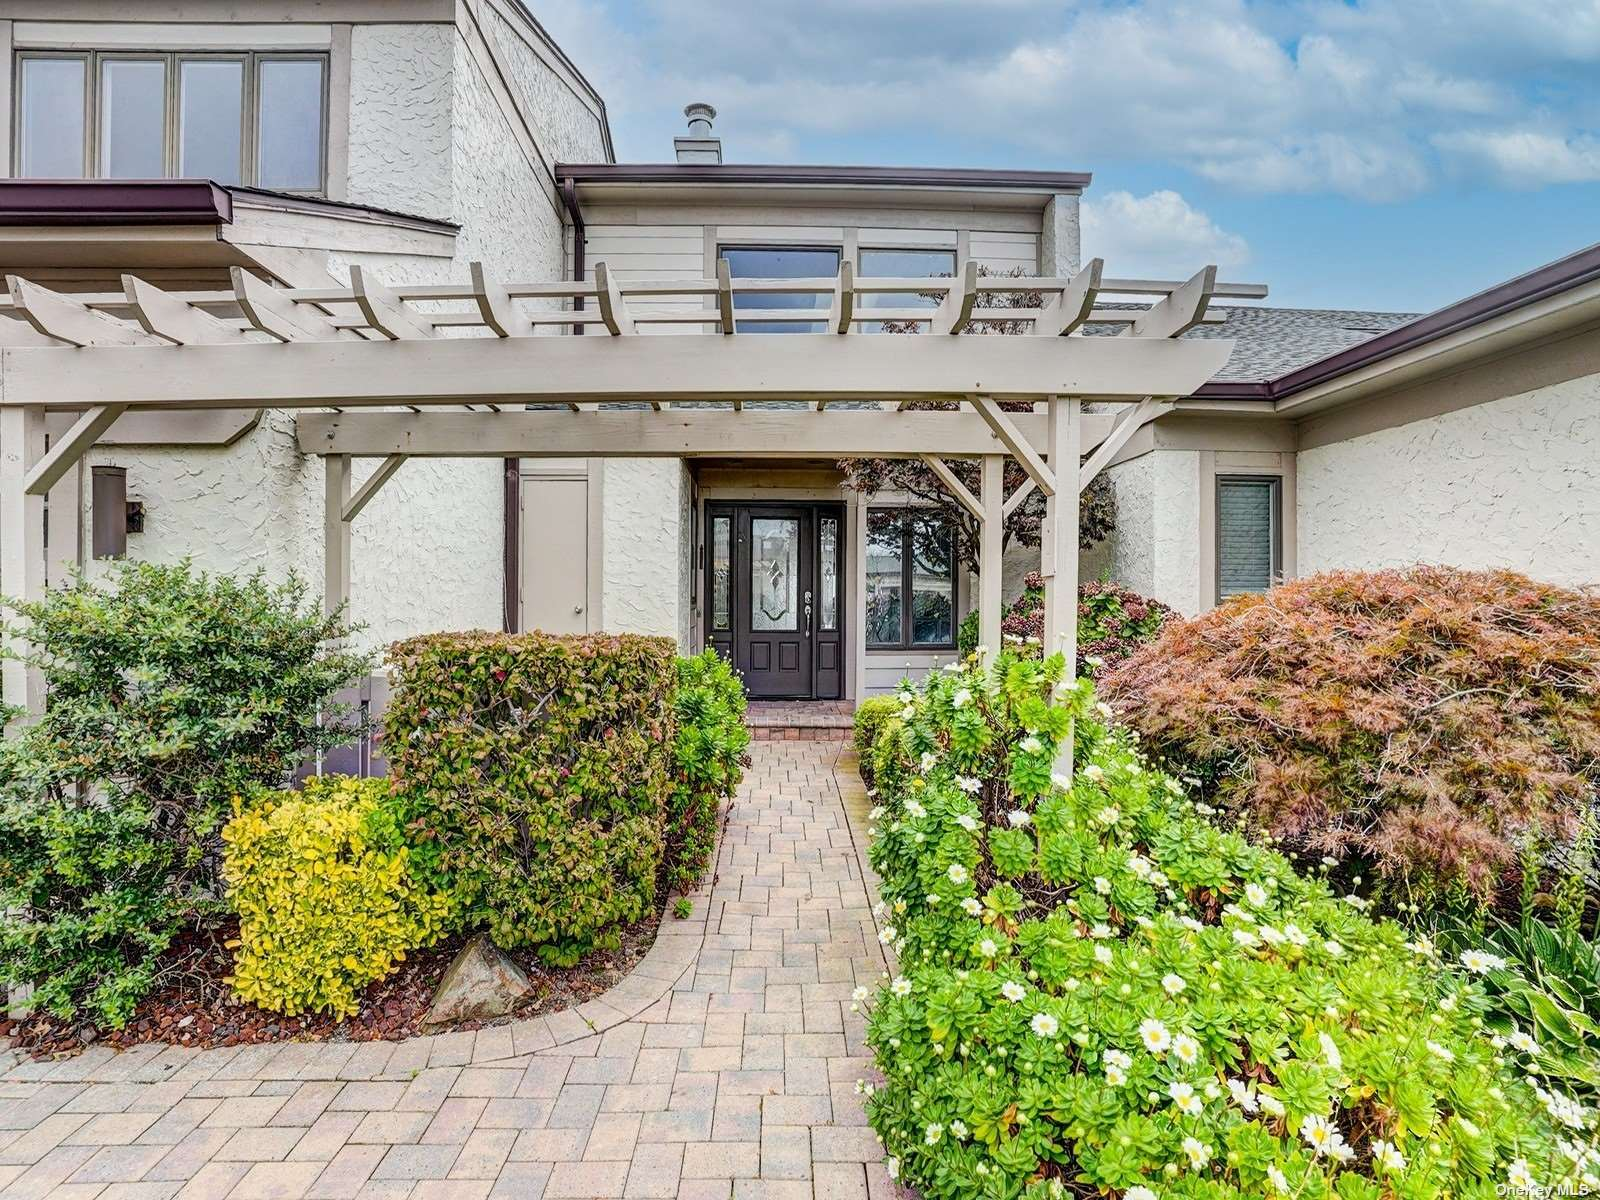 OPPORTUNITY!!! Large 3 BR 2.5 Bth Bay Front Condo In Prestigious Captains Walk.  Ready for Your Personal Renovation.  Completely Gutted, Comes with Architectural Plans to Make this your Dream Home. Views Galore, Clubhouse, Pool, Quiet Community